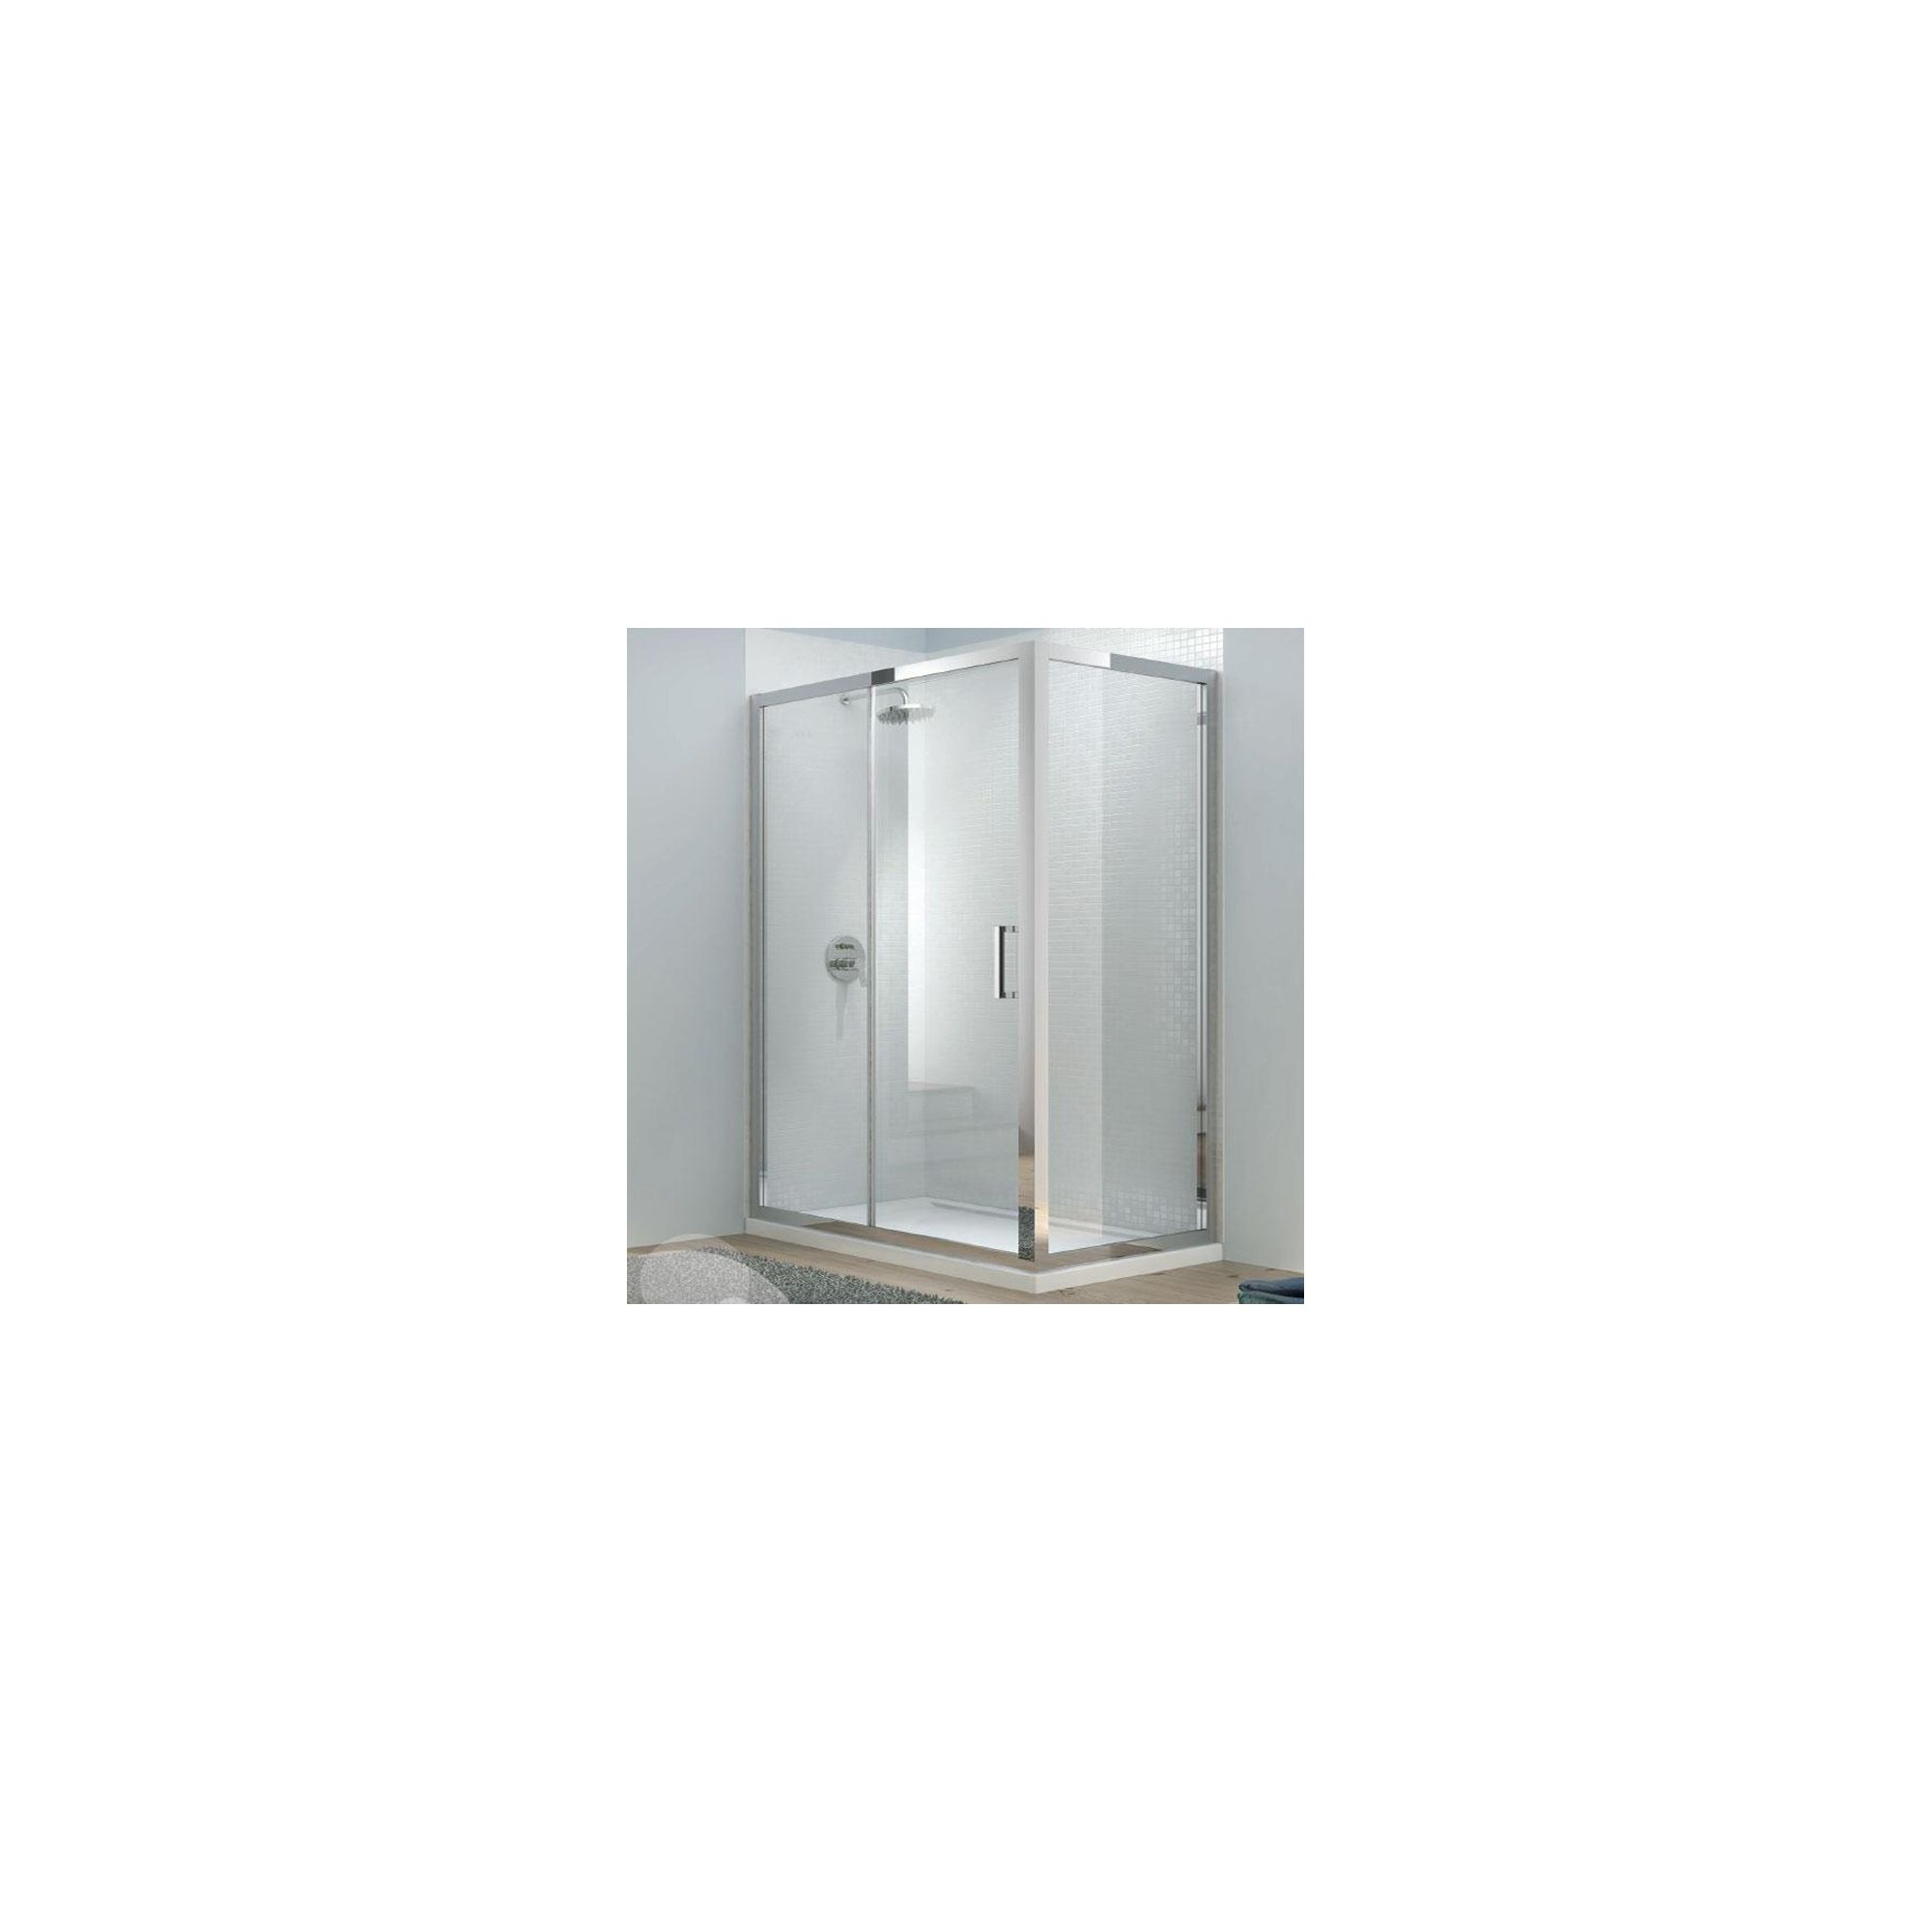 Merlyn Vivid Eight Sliding Shower Door, 1500mm Wide, 8mm Glass at Tesco Direct